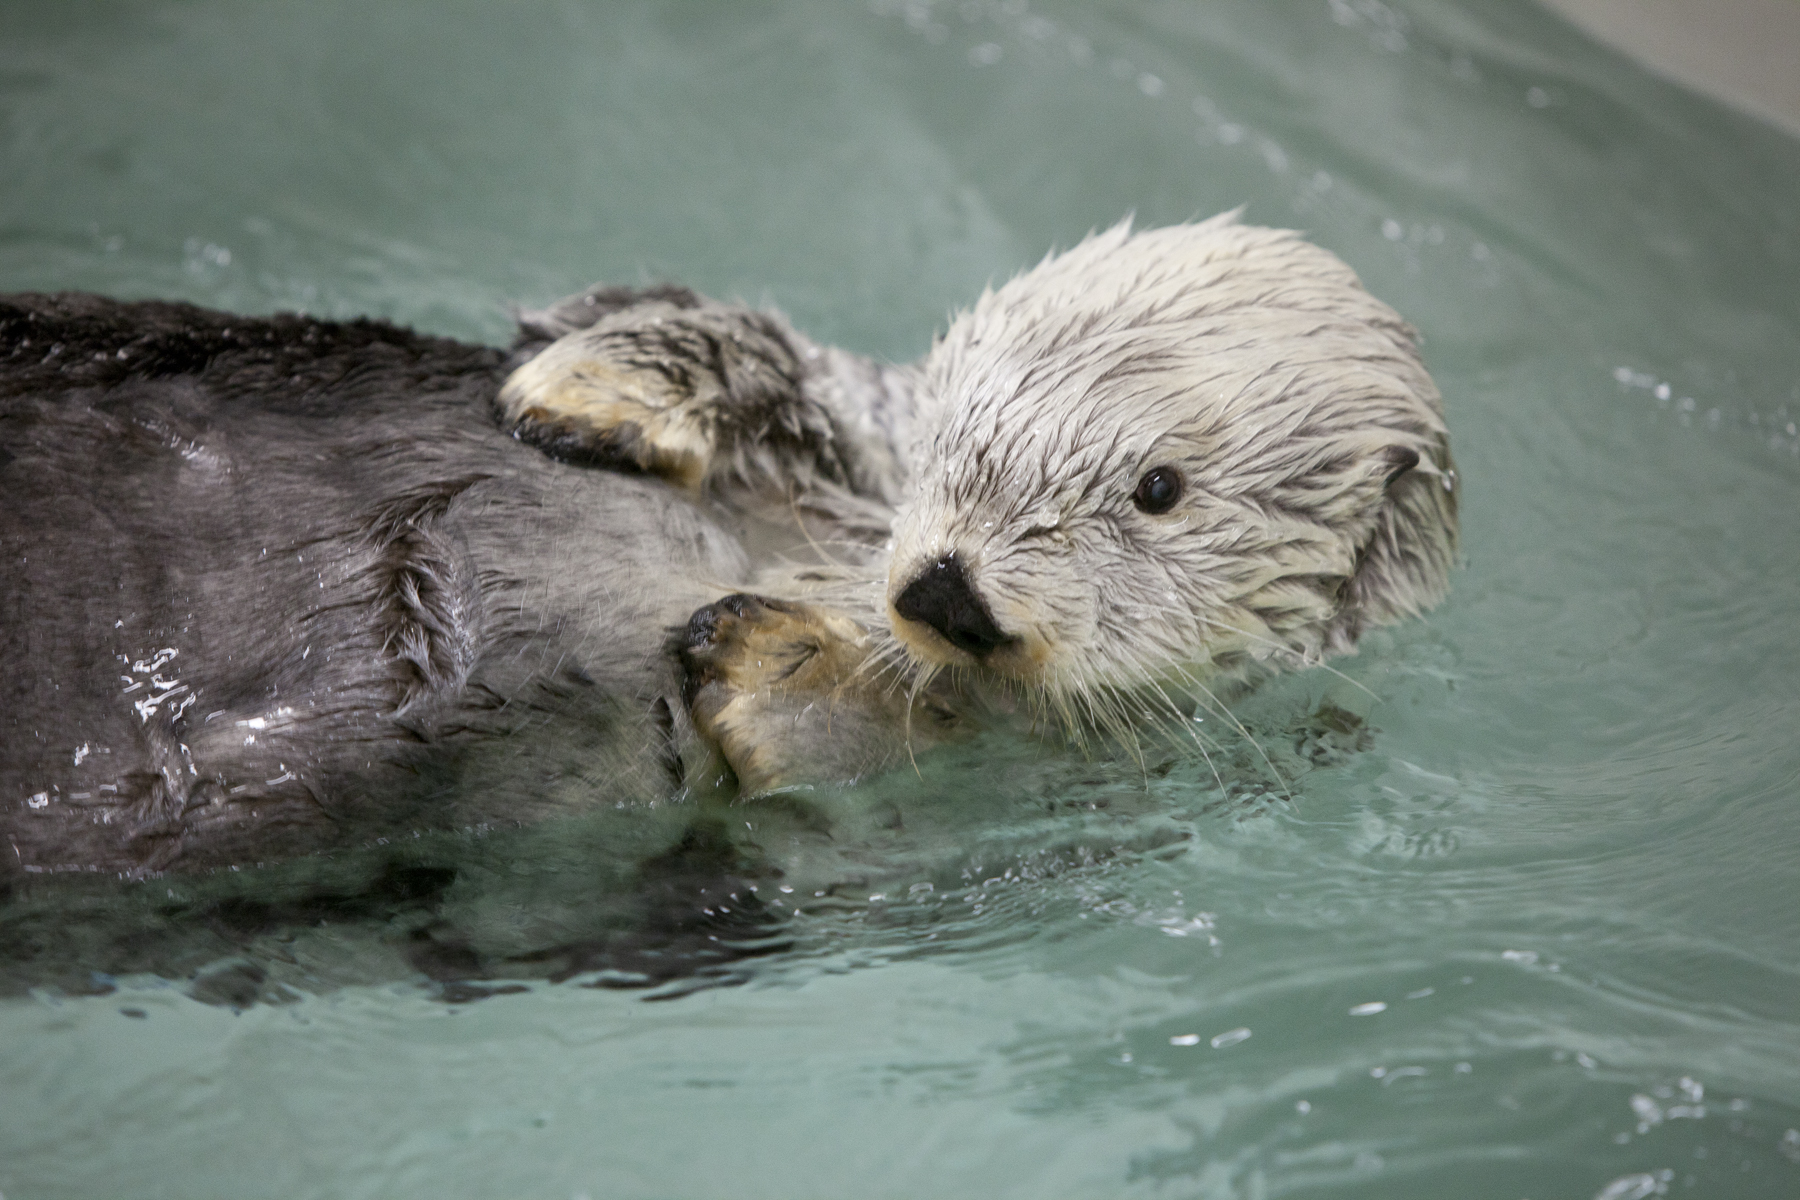 Kenai, One of the Last Otter Survivors of the Exxon Valdez Spill, Has Died